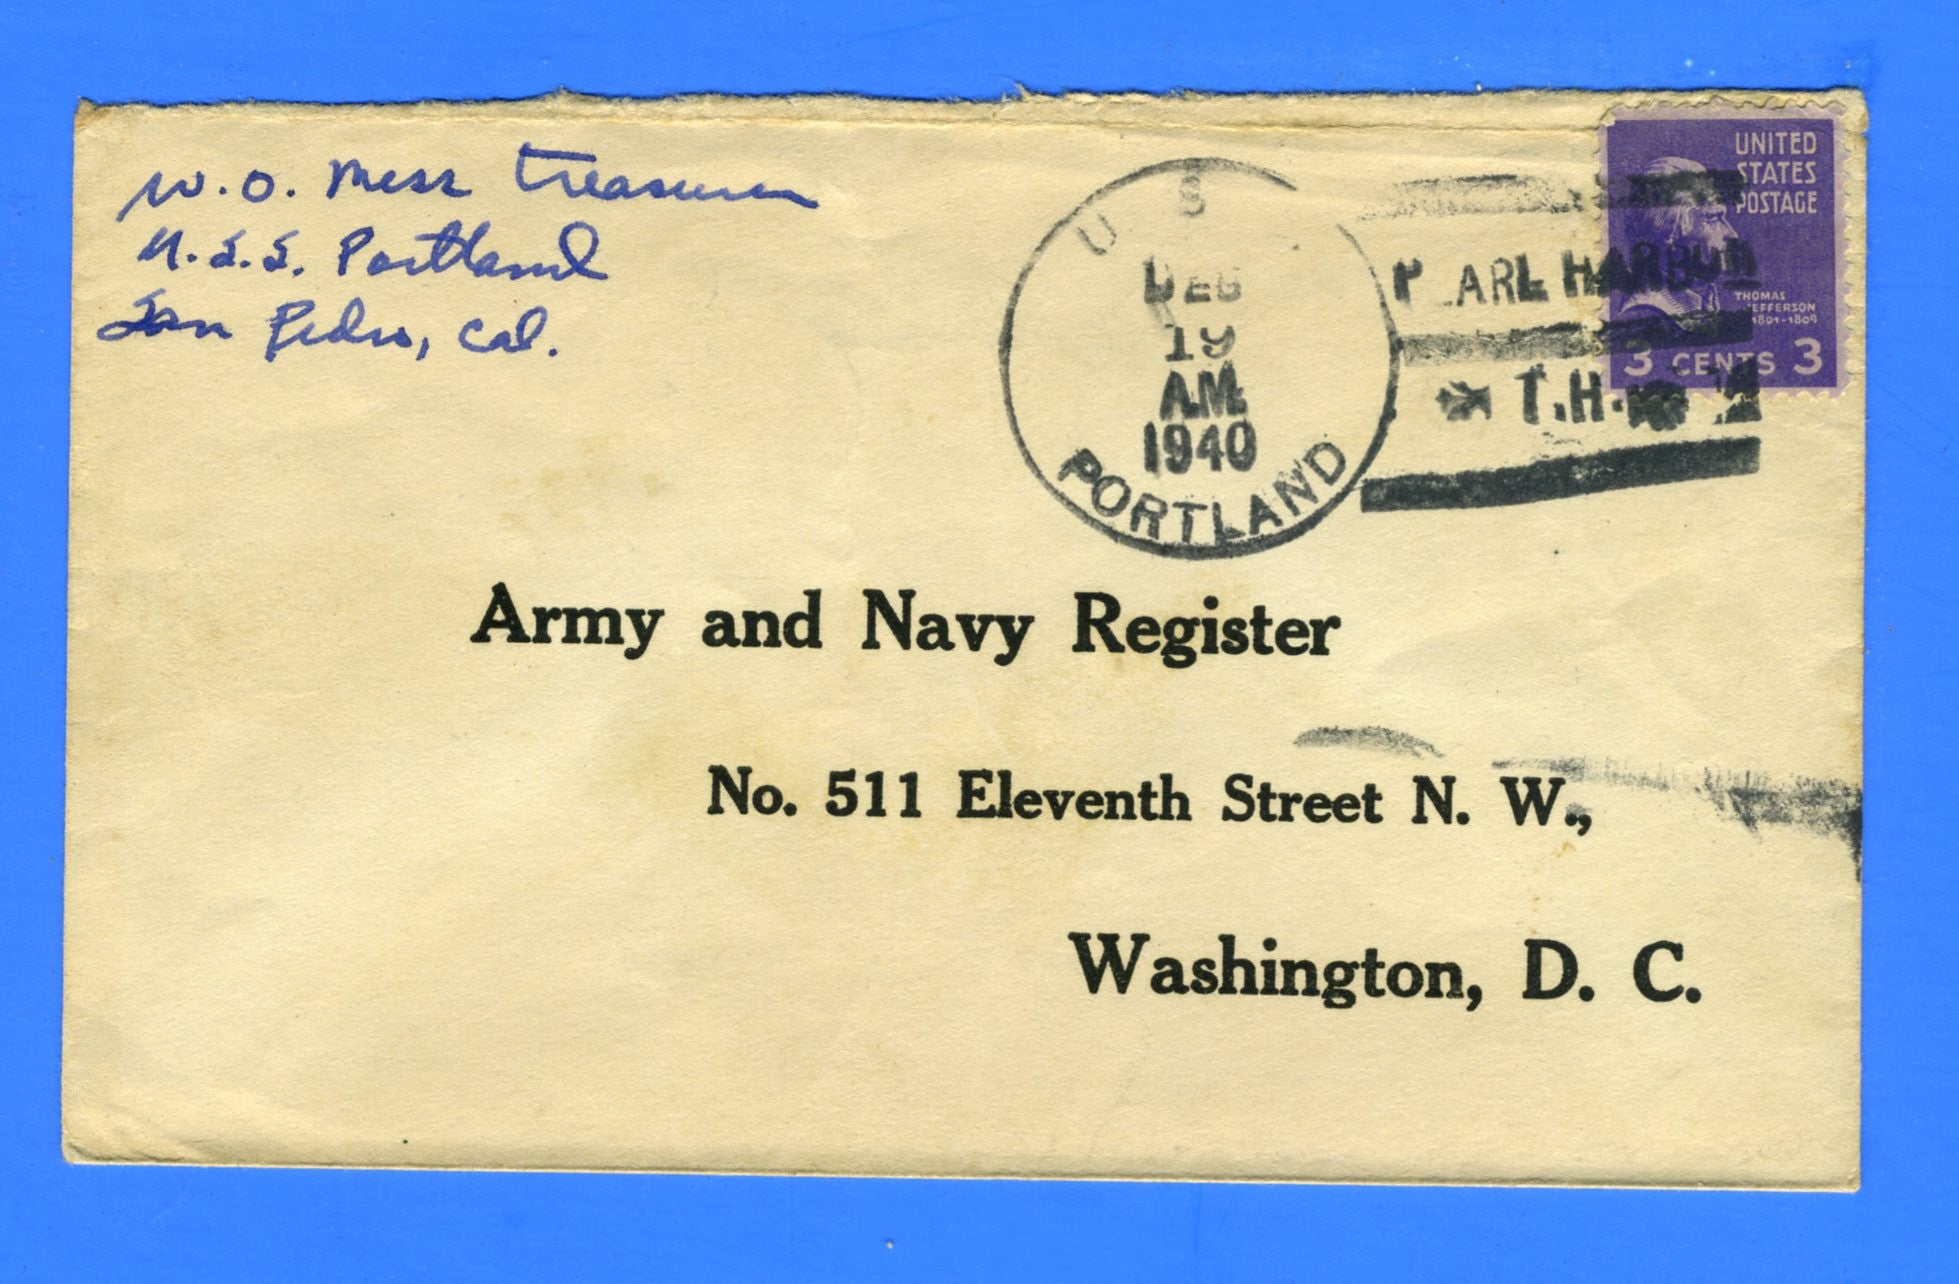 USS Portland CA-33 Sailor's Mail to Army and Navy Register Pearl Harbor December 19, 1940